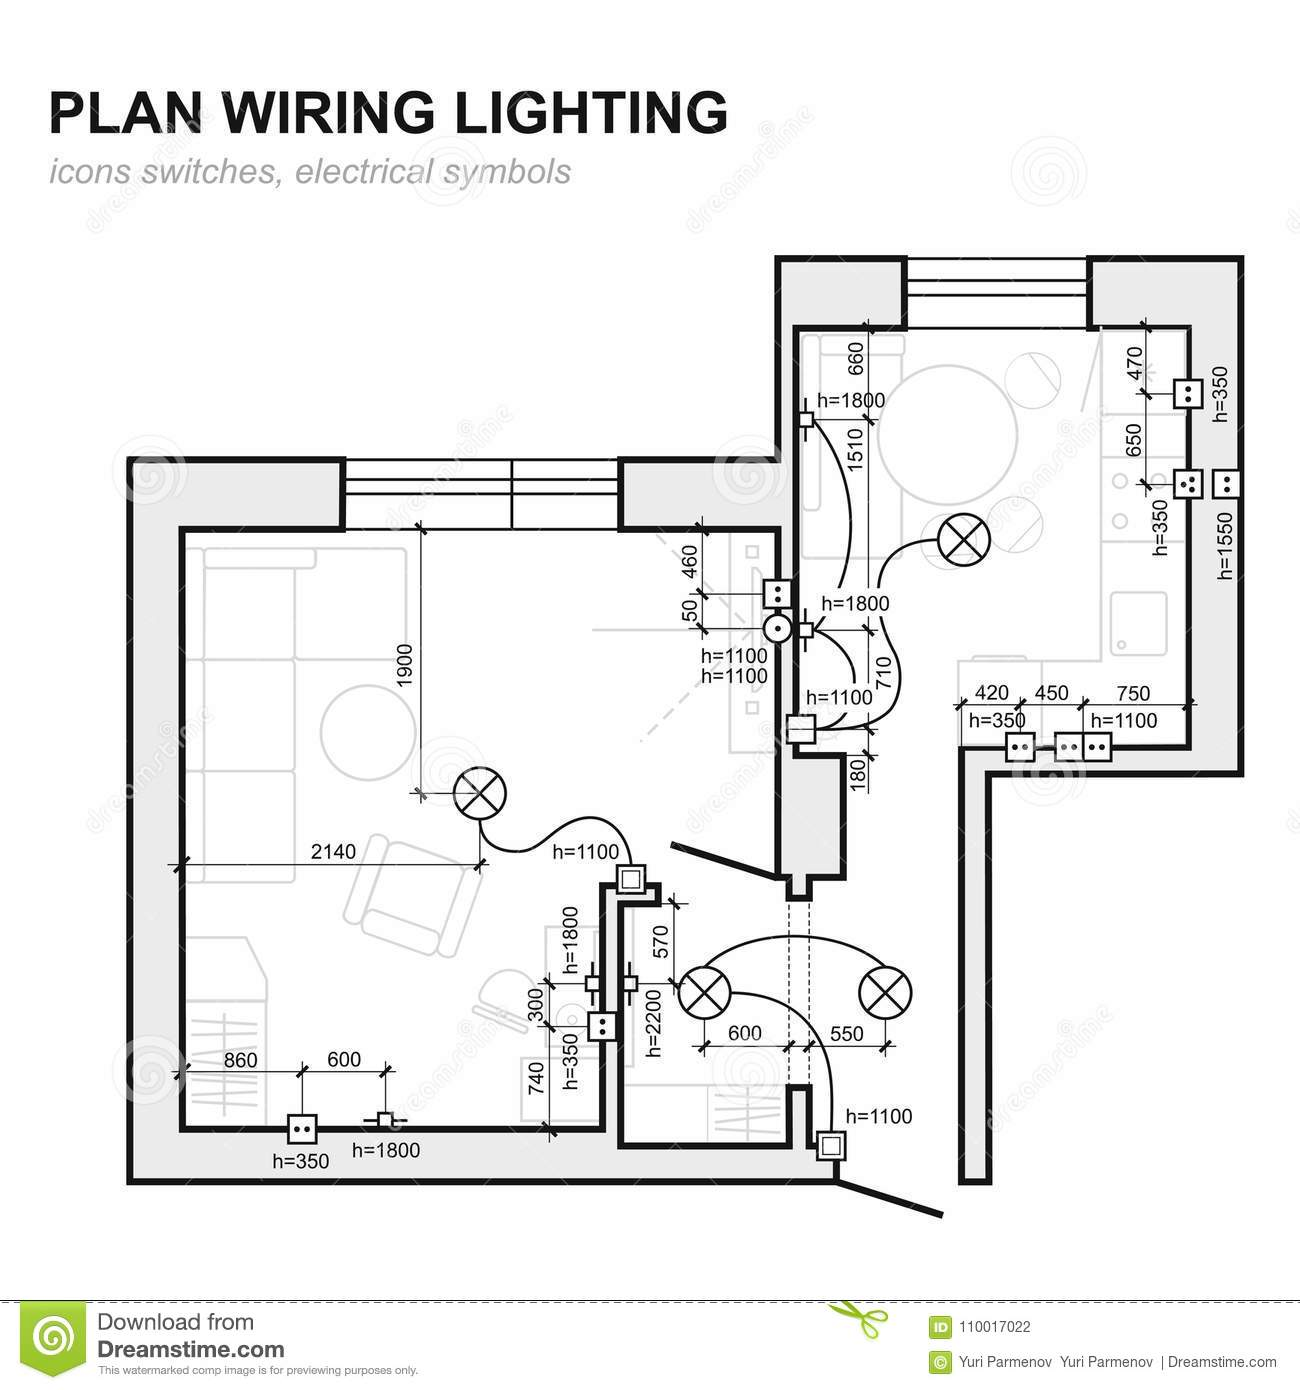 royalty-free vector  plan wiring lighting  electrical schematic interior